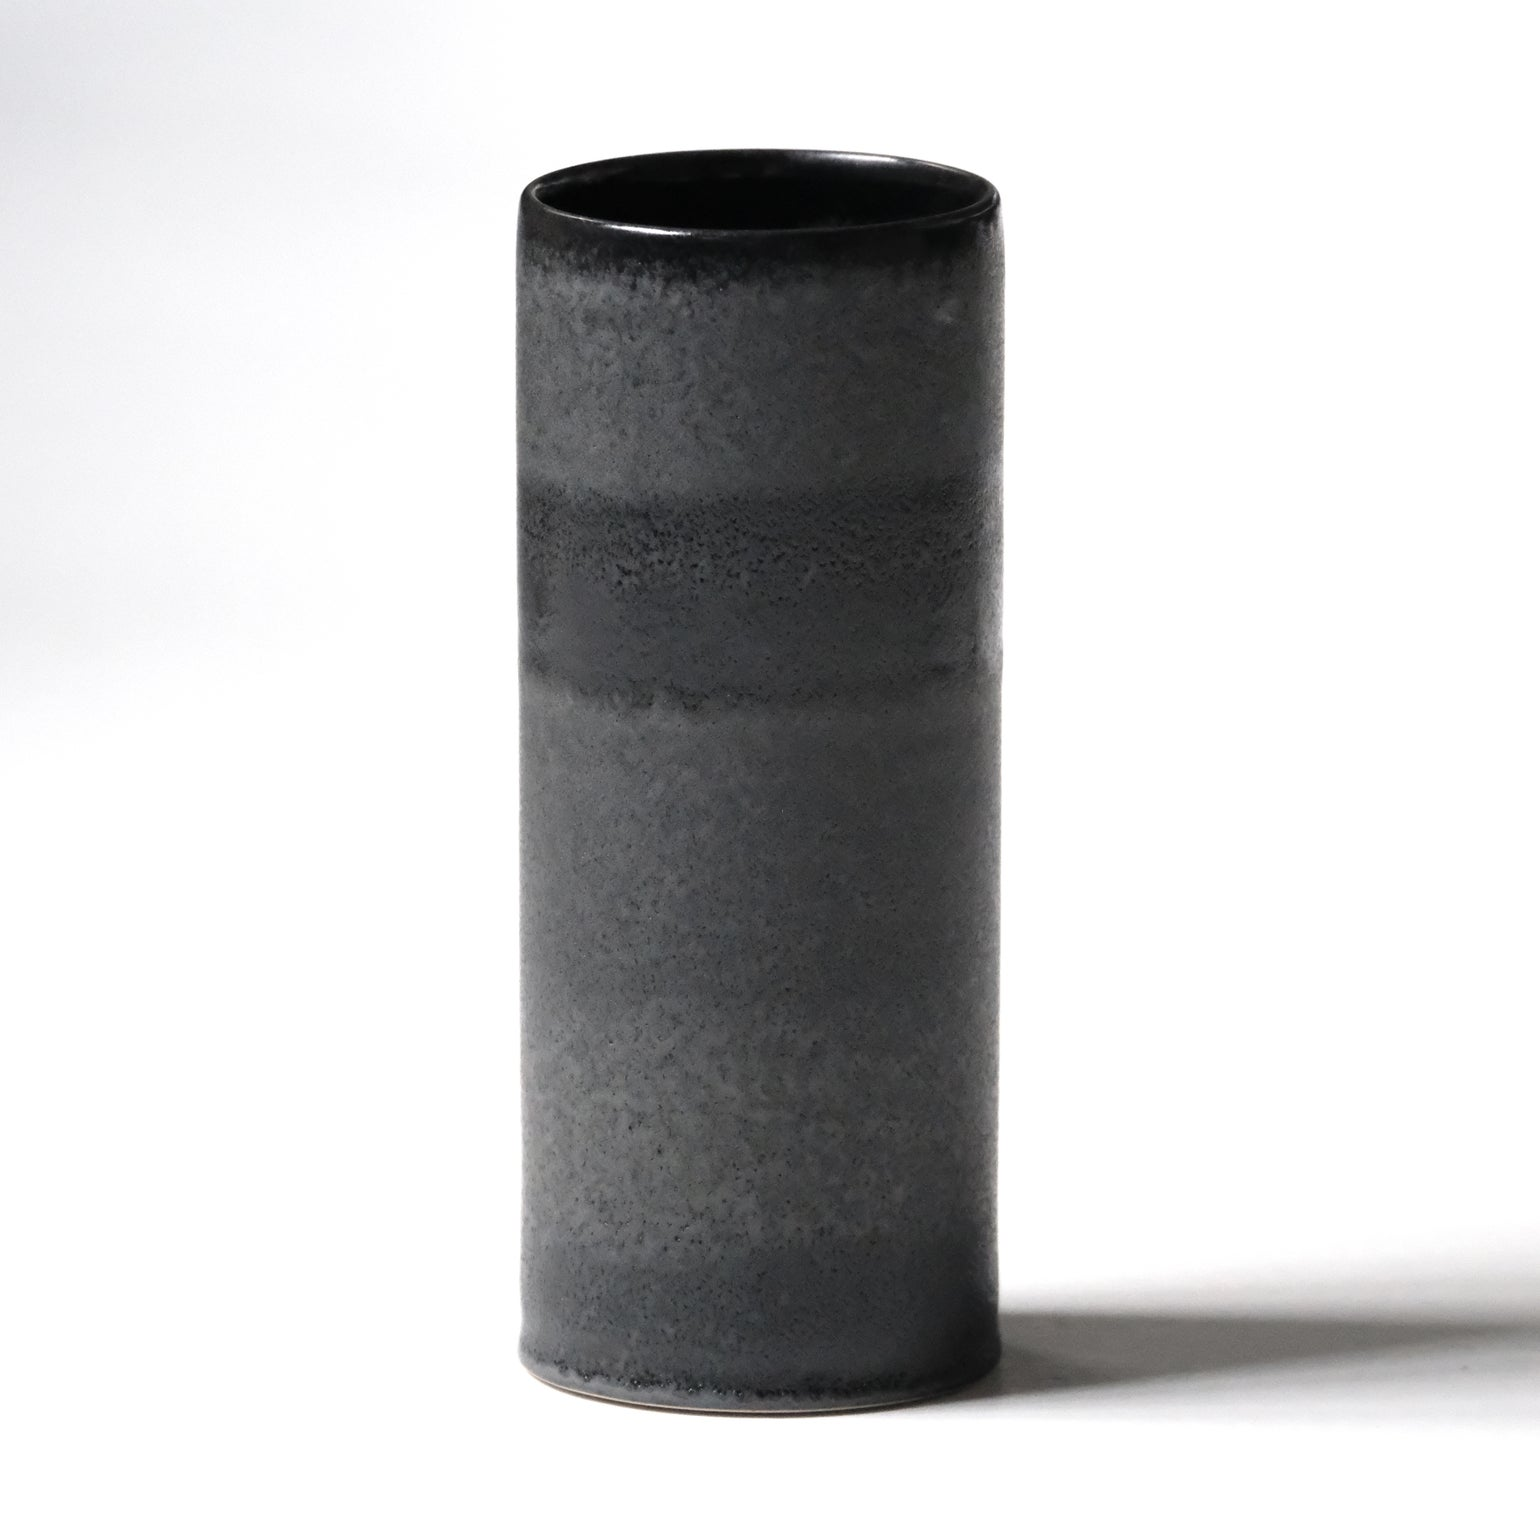 Image of LARGE UNIKA CYLINDER IN OBSIDIAN BLACK GLAZE